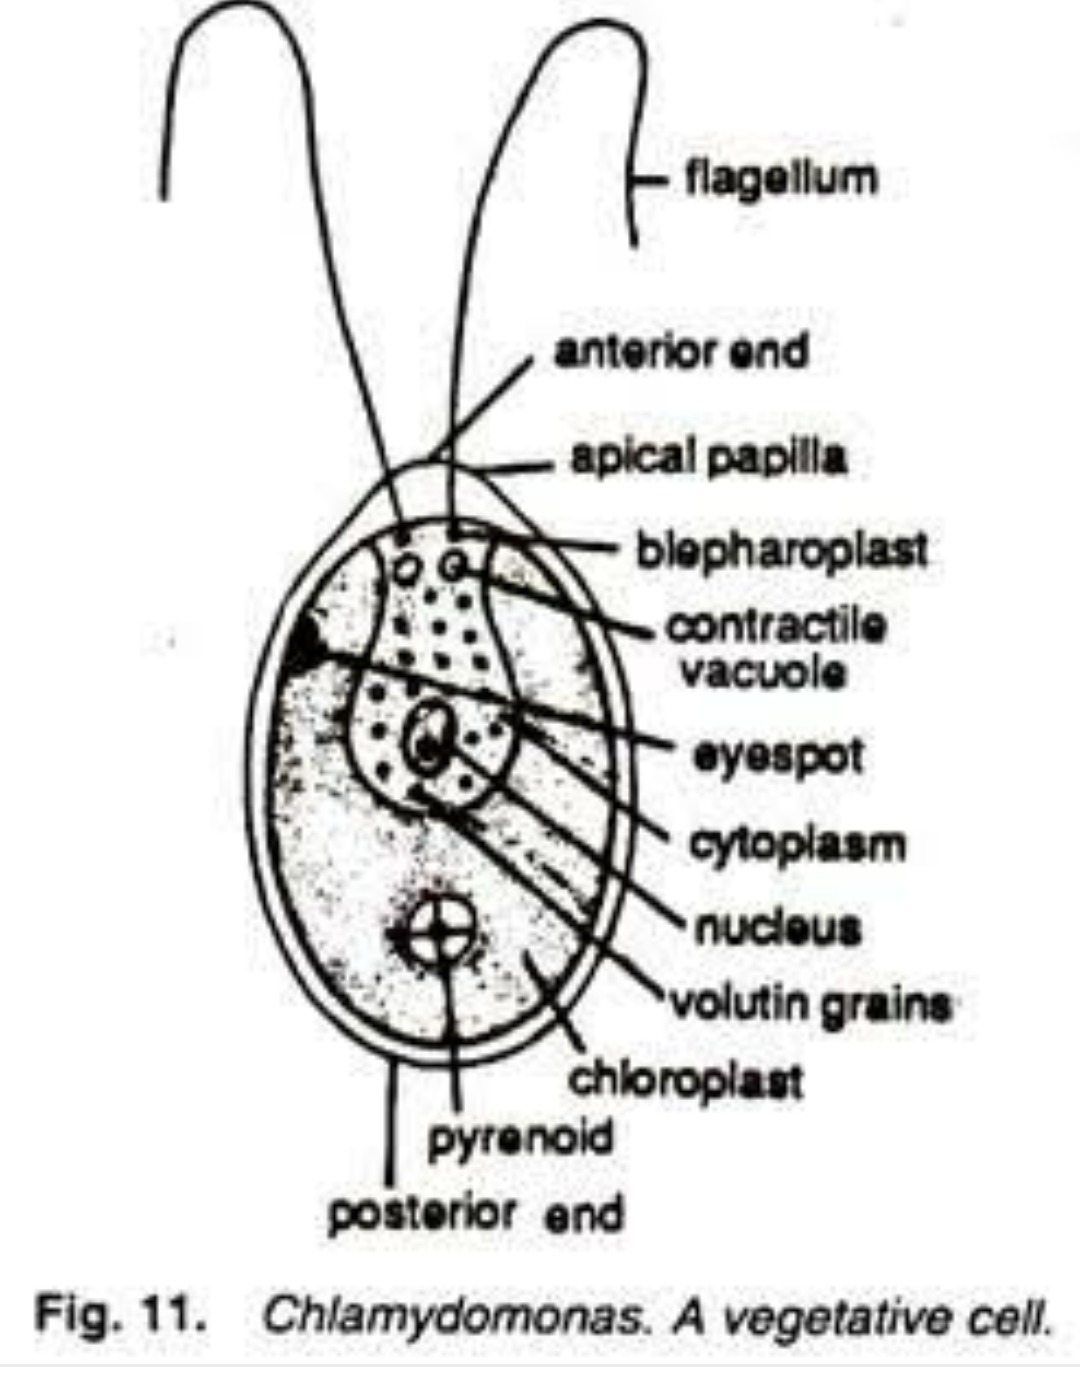 Labelled Diagram Of Chlamydomonas